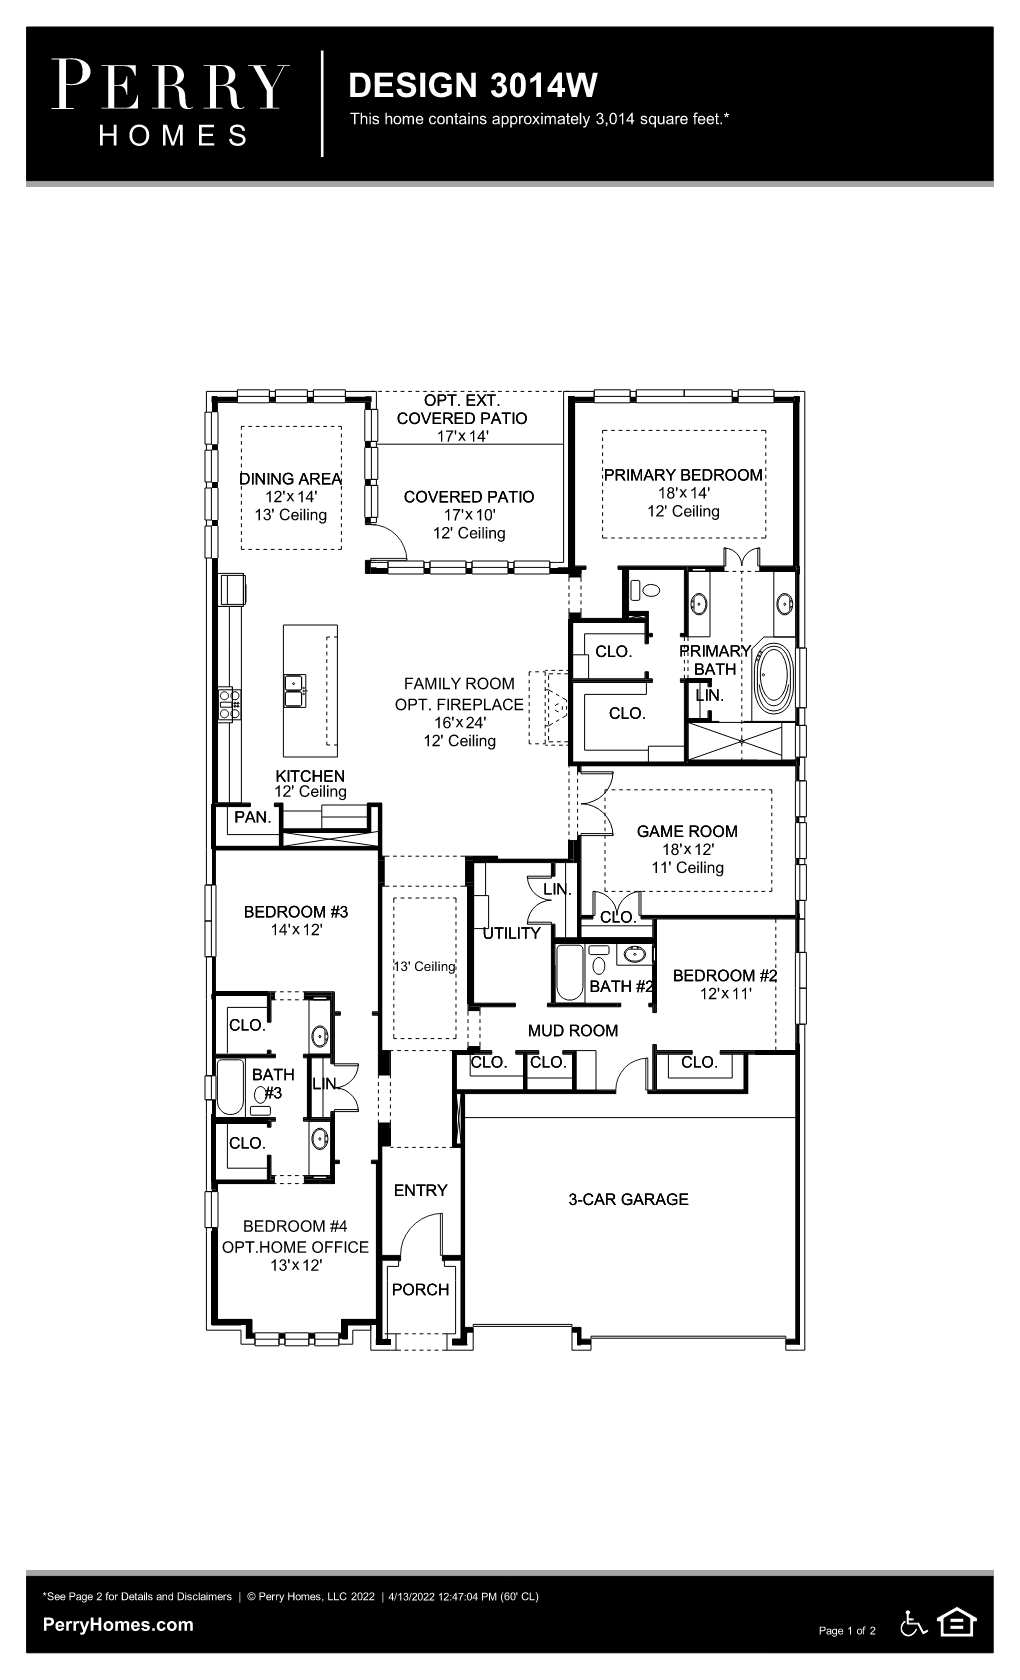 Floor Plan for 3014W